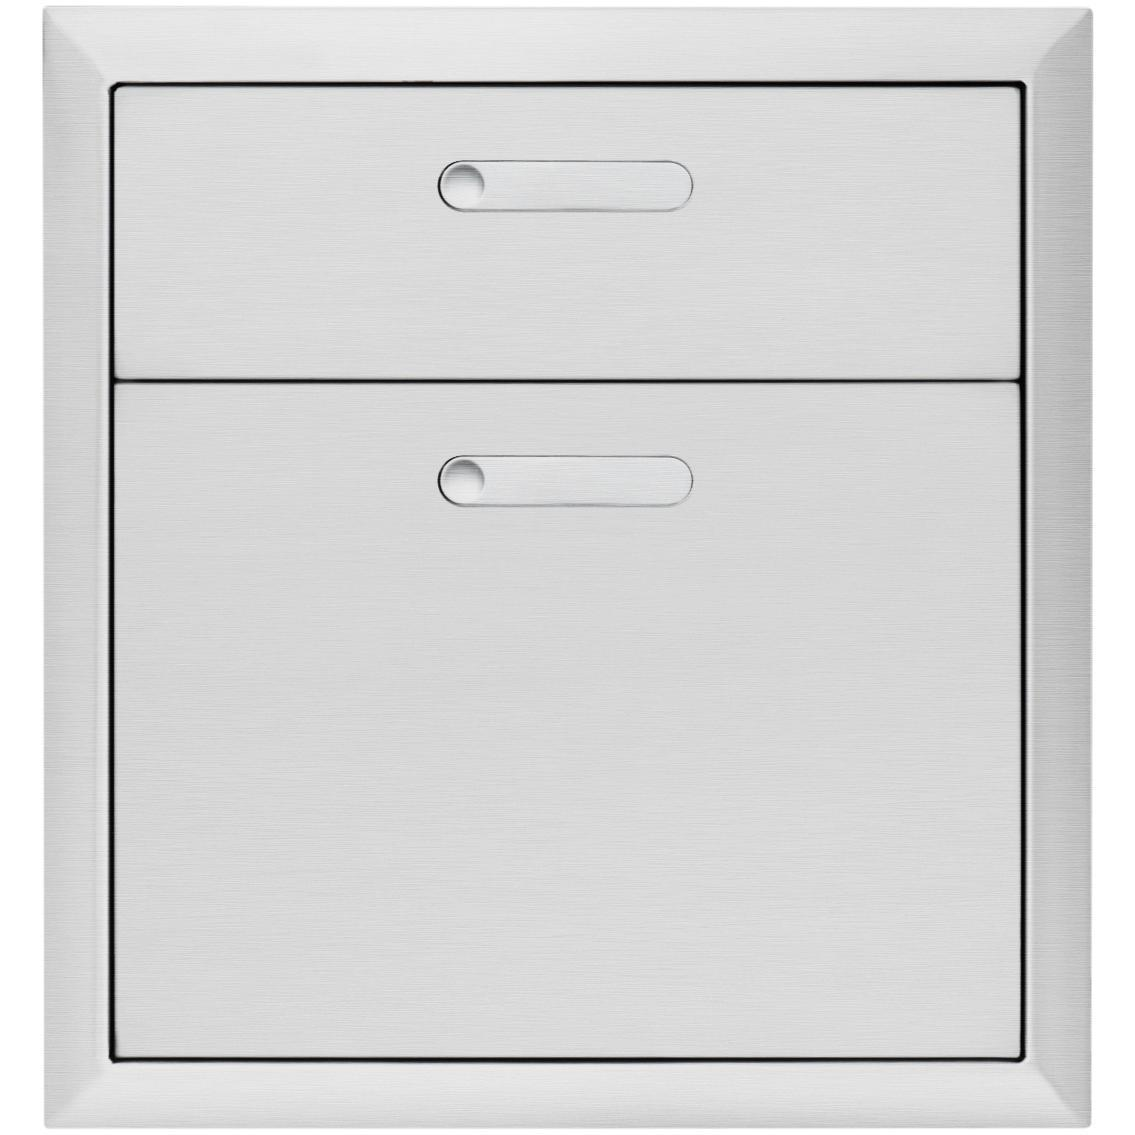 "Lynx 19"" Wide Double Drawer"